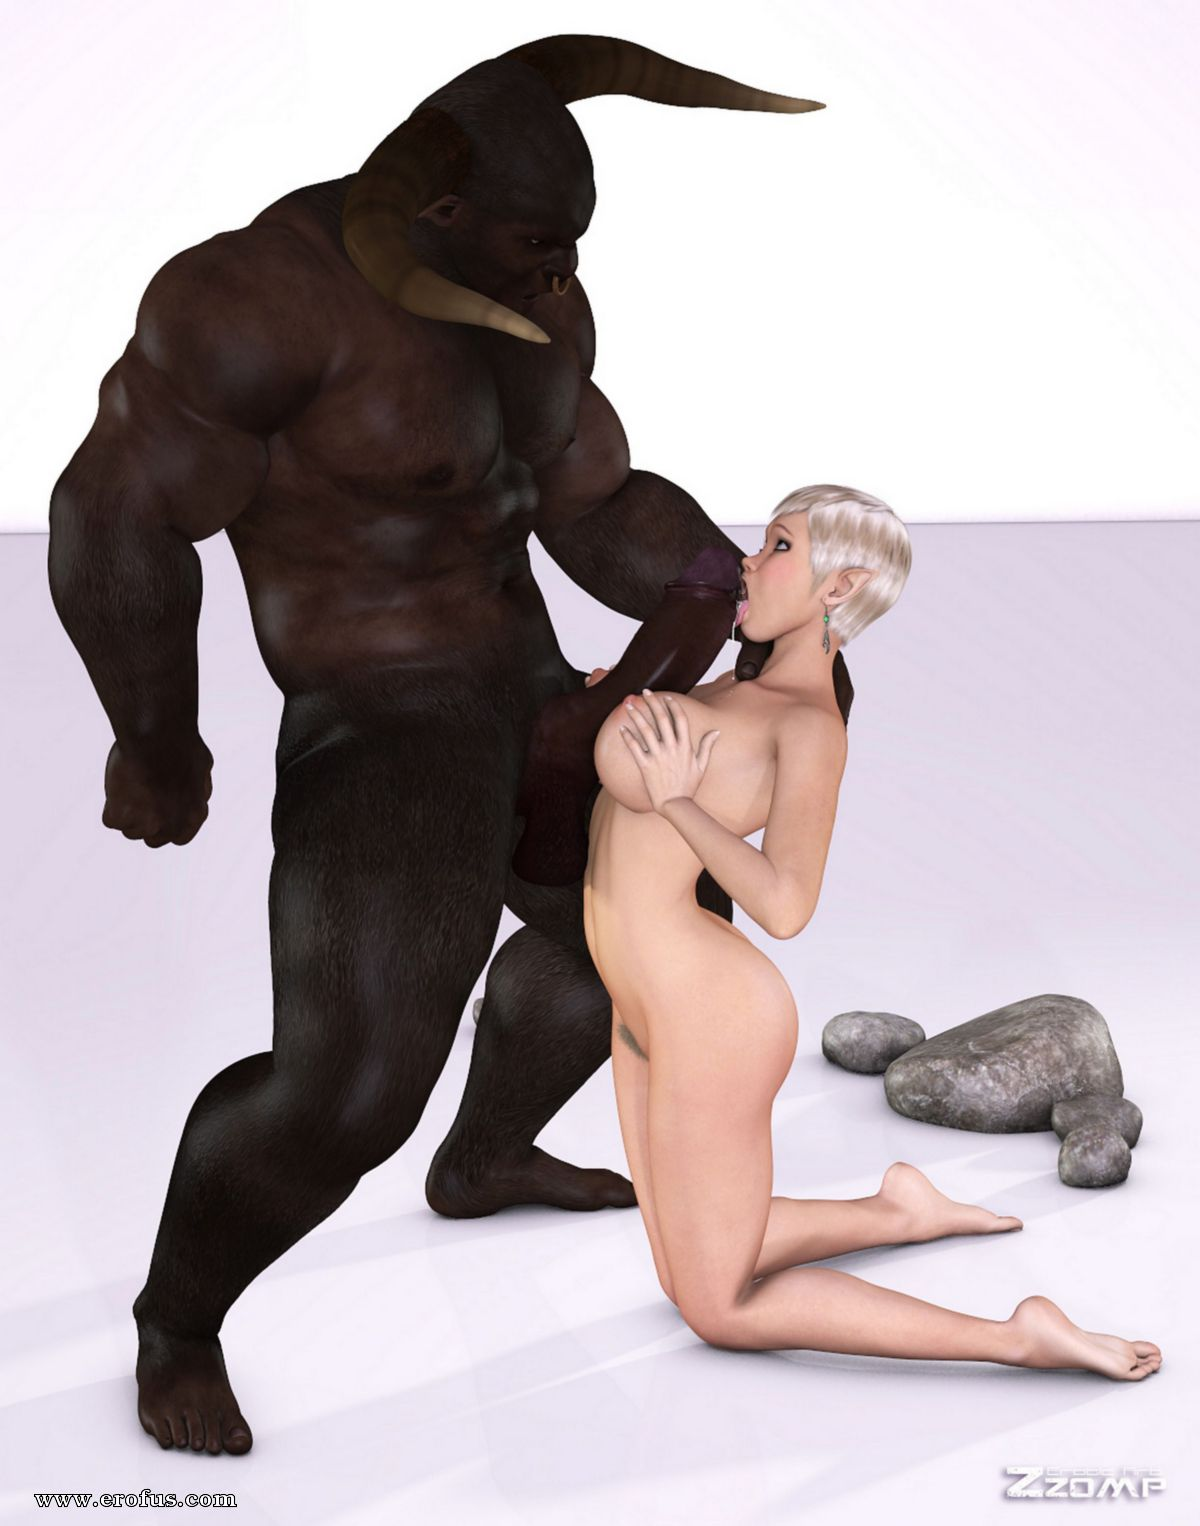 Mature white woman is in love with her black bull